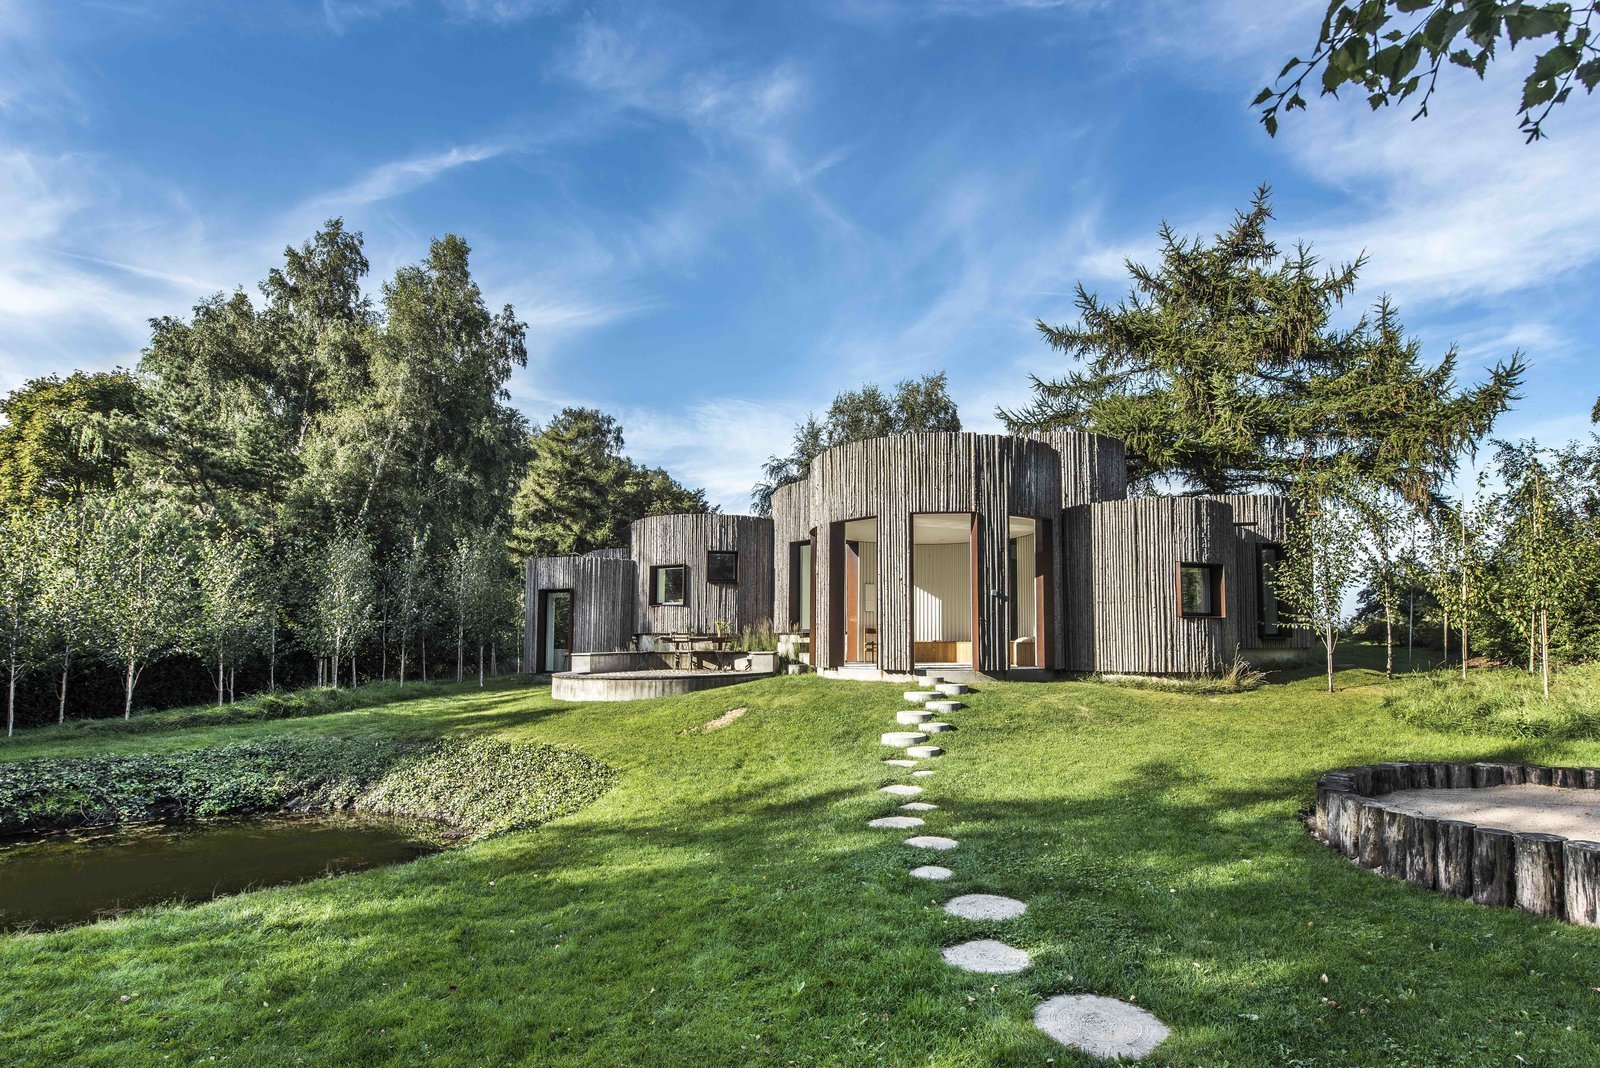 Stay in This Danish Vacation Home Made Up of 9 Log-Clad Cylinders